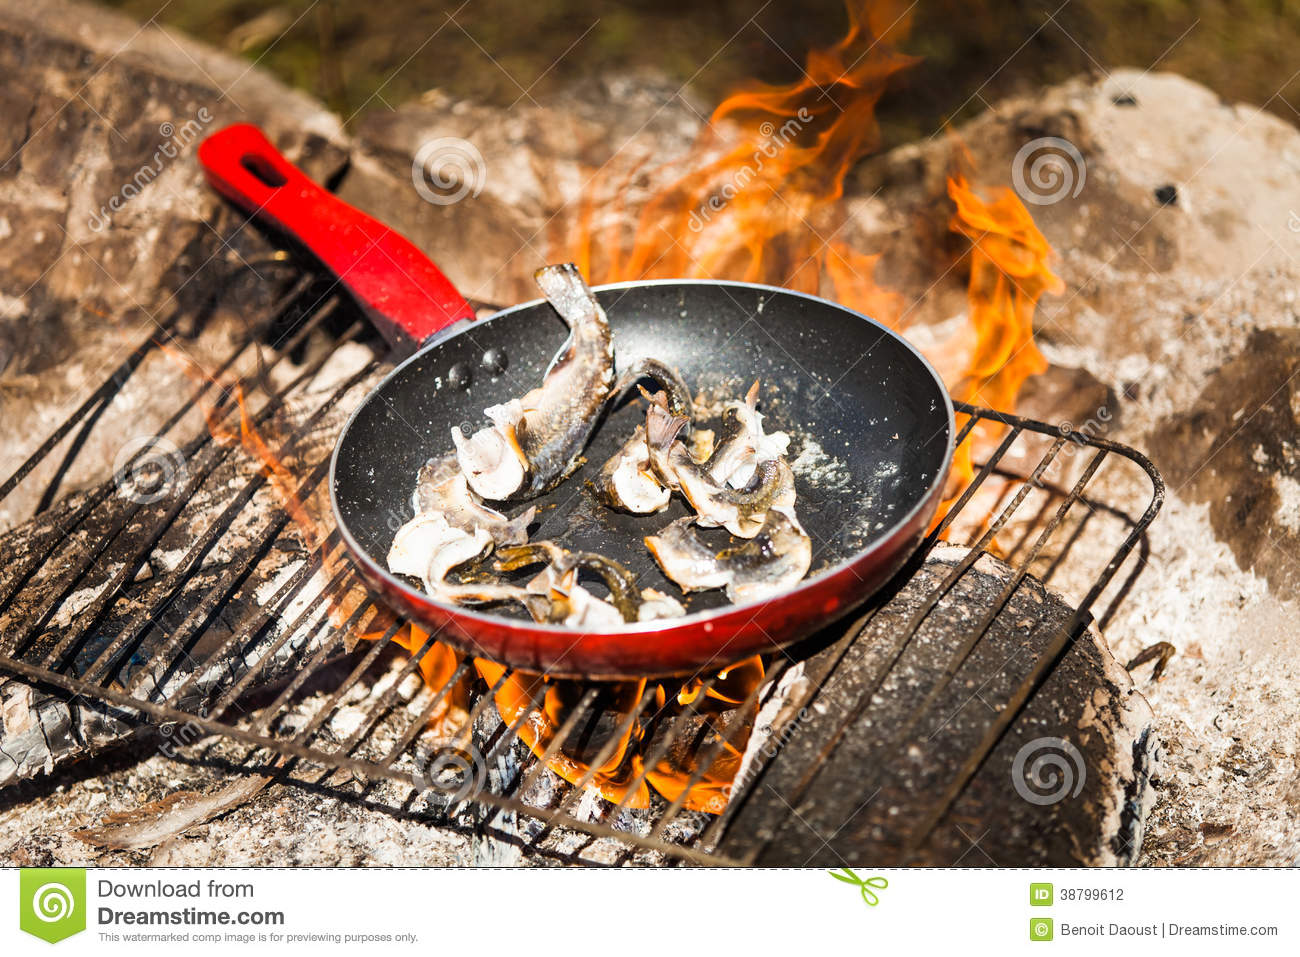 Small Trouts Cooking on a Campfire